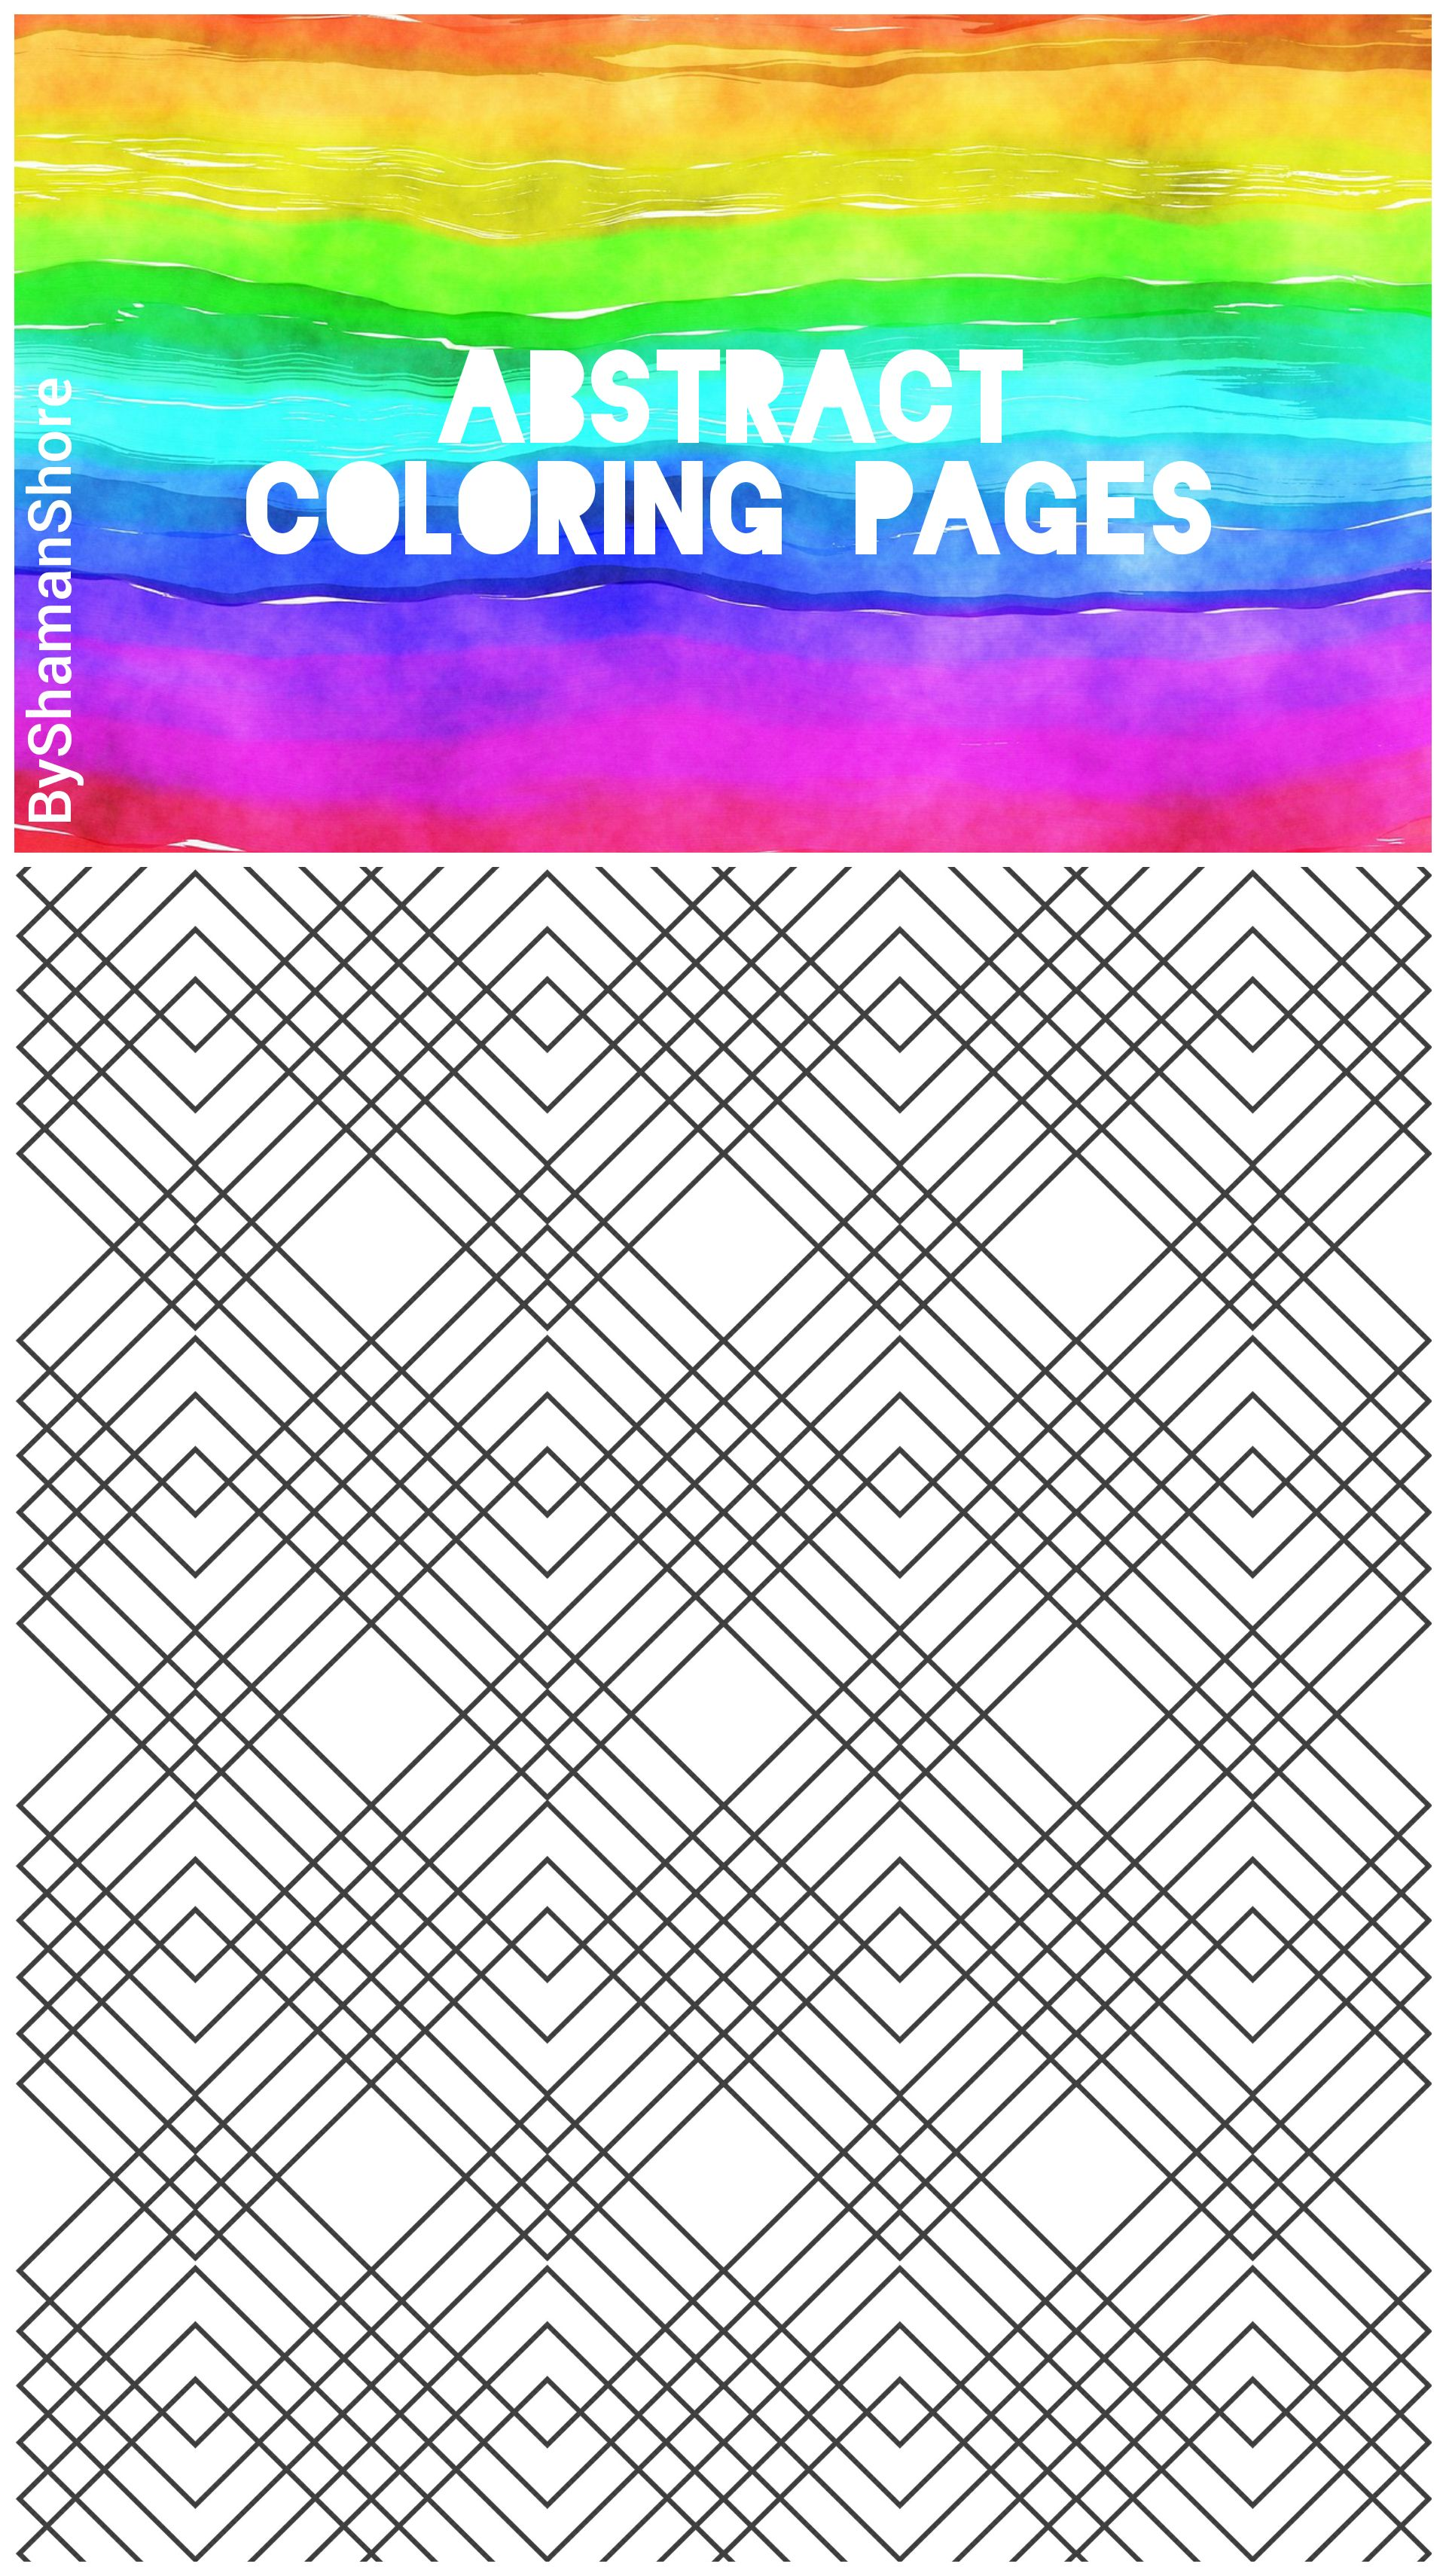 Abstract Coloring Pages For Grown Ups Printable Adult Download